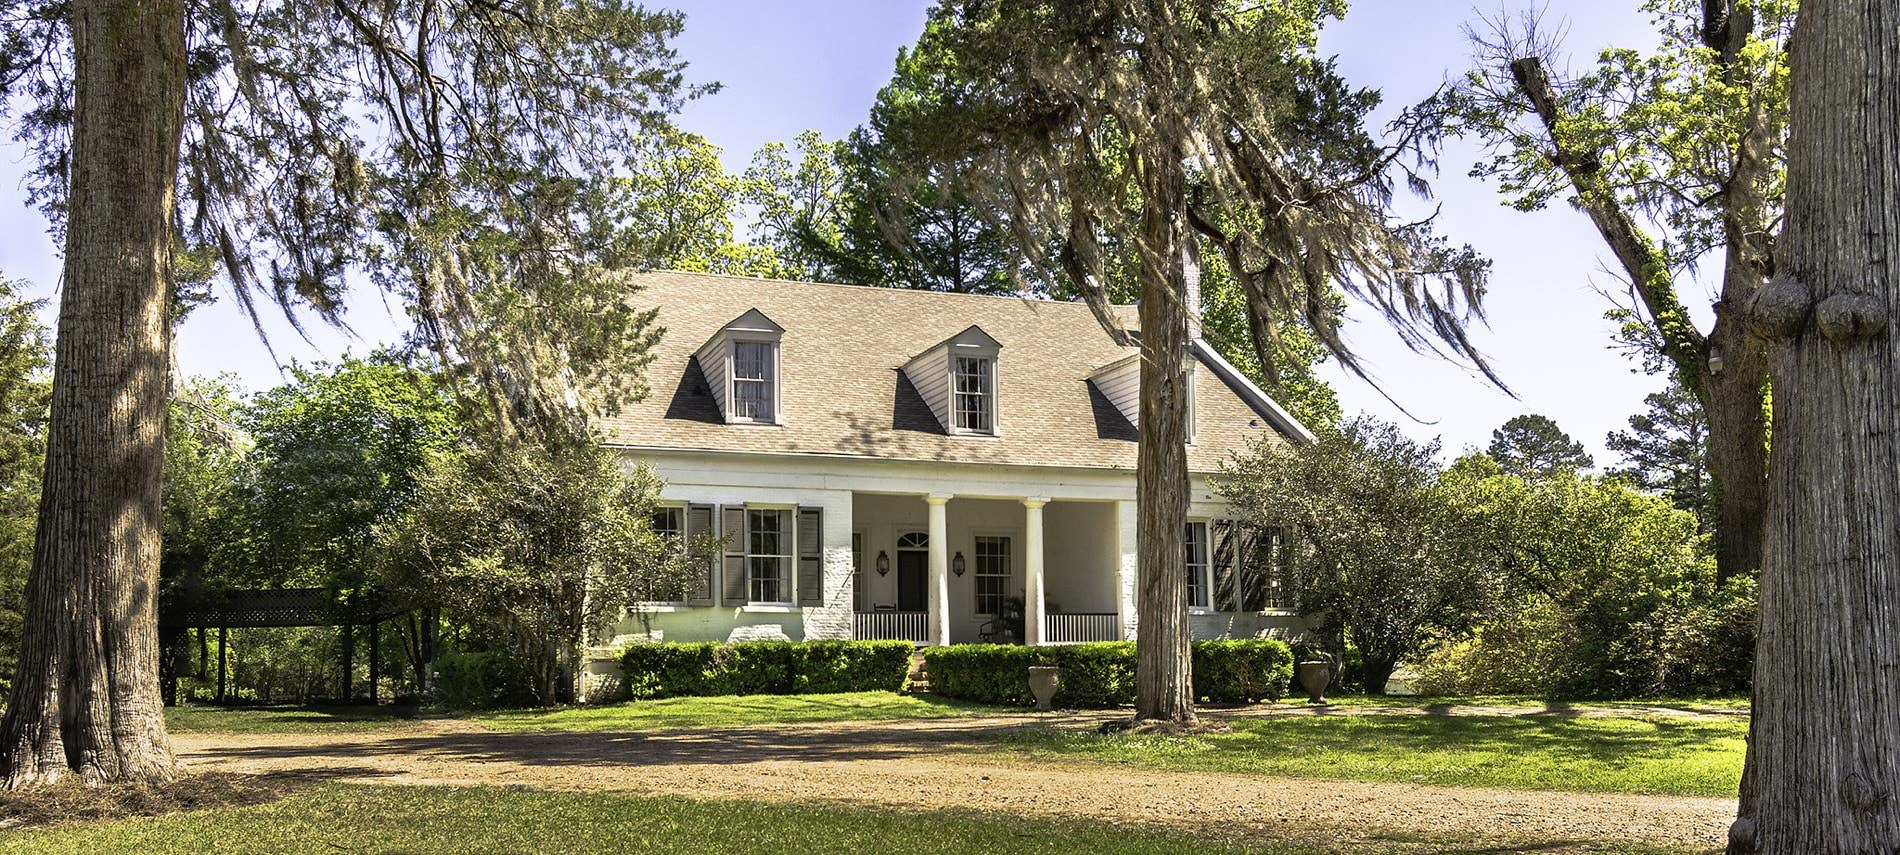 Front view of b&b with white siding and nine windows, a large green lawn with dirt driveway, and area surrounded by trees